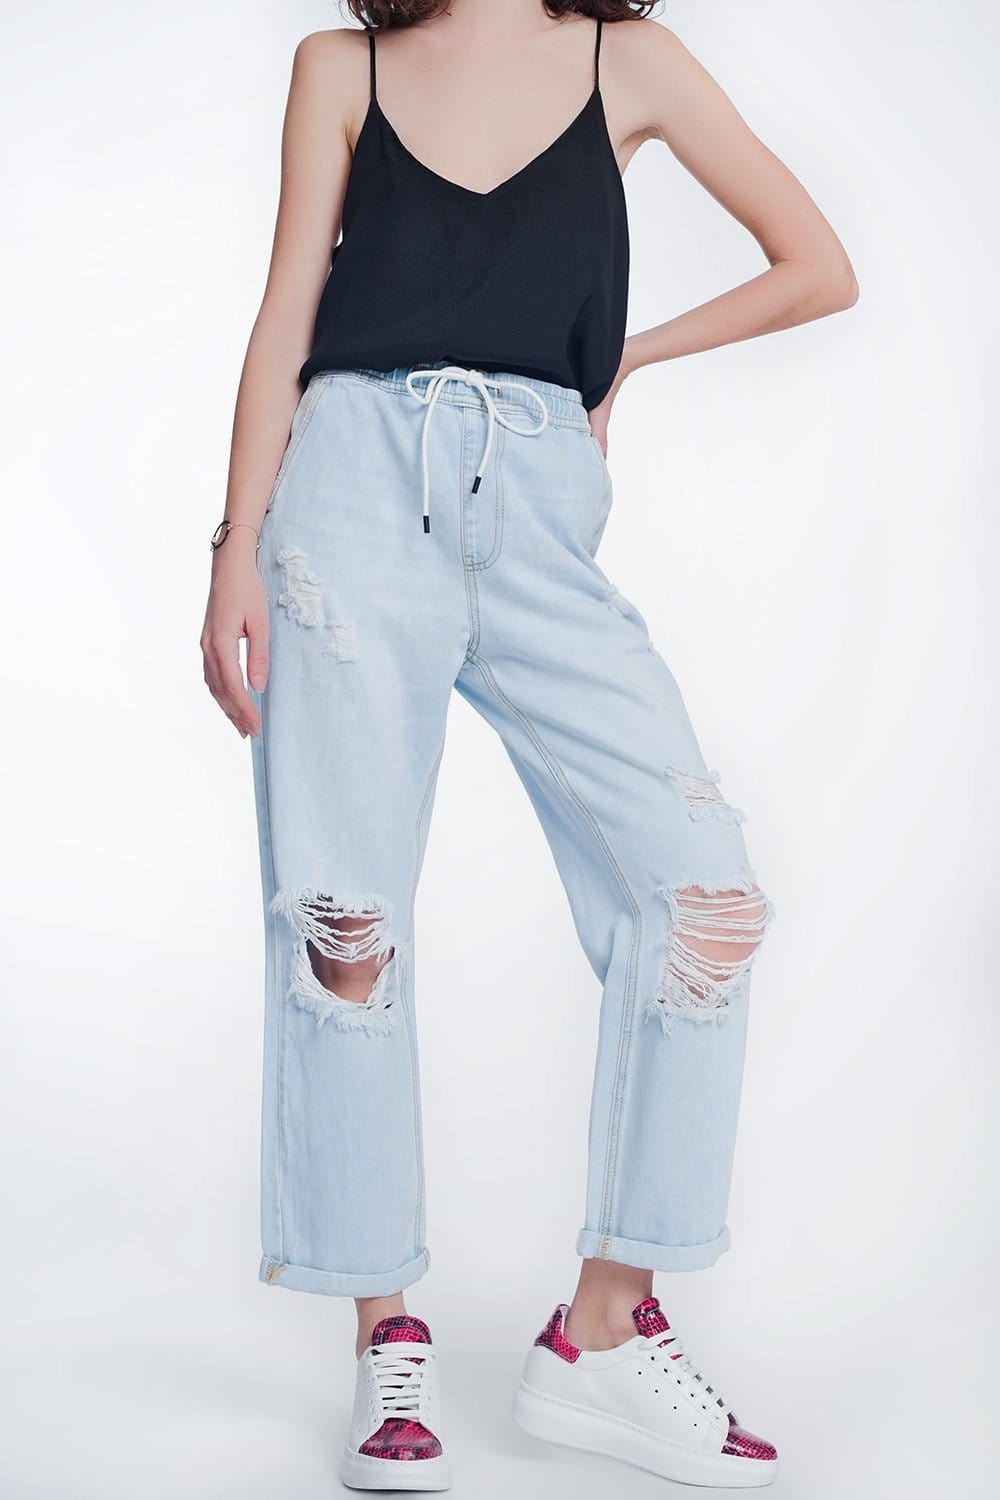 Q2 high rise straight crop jeans in lightwash blue